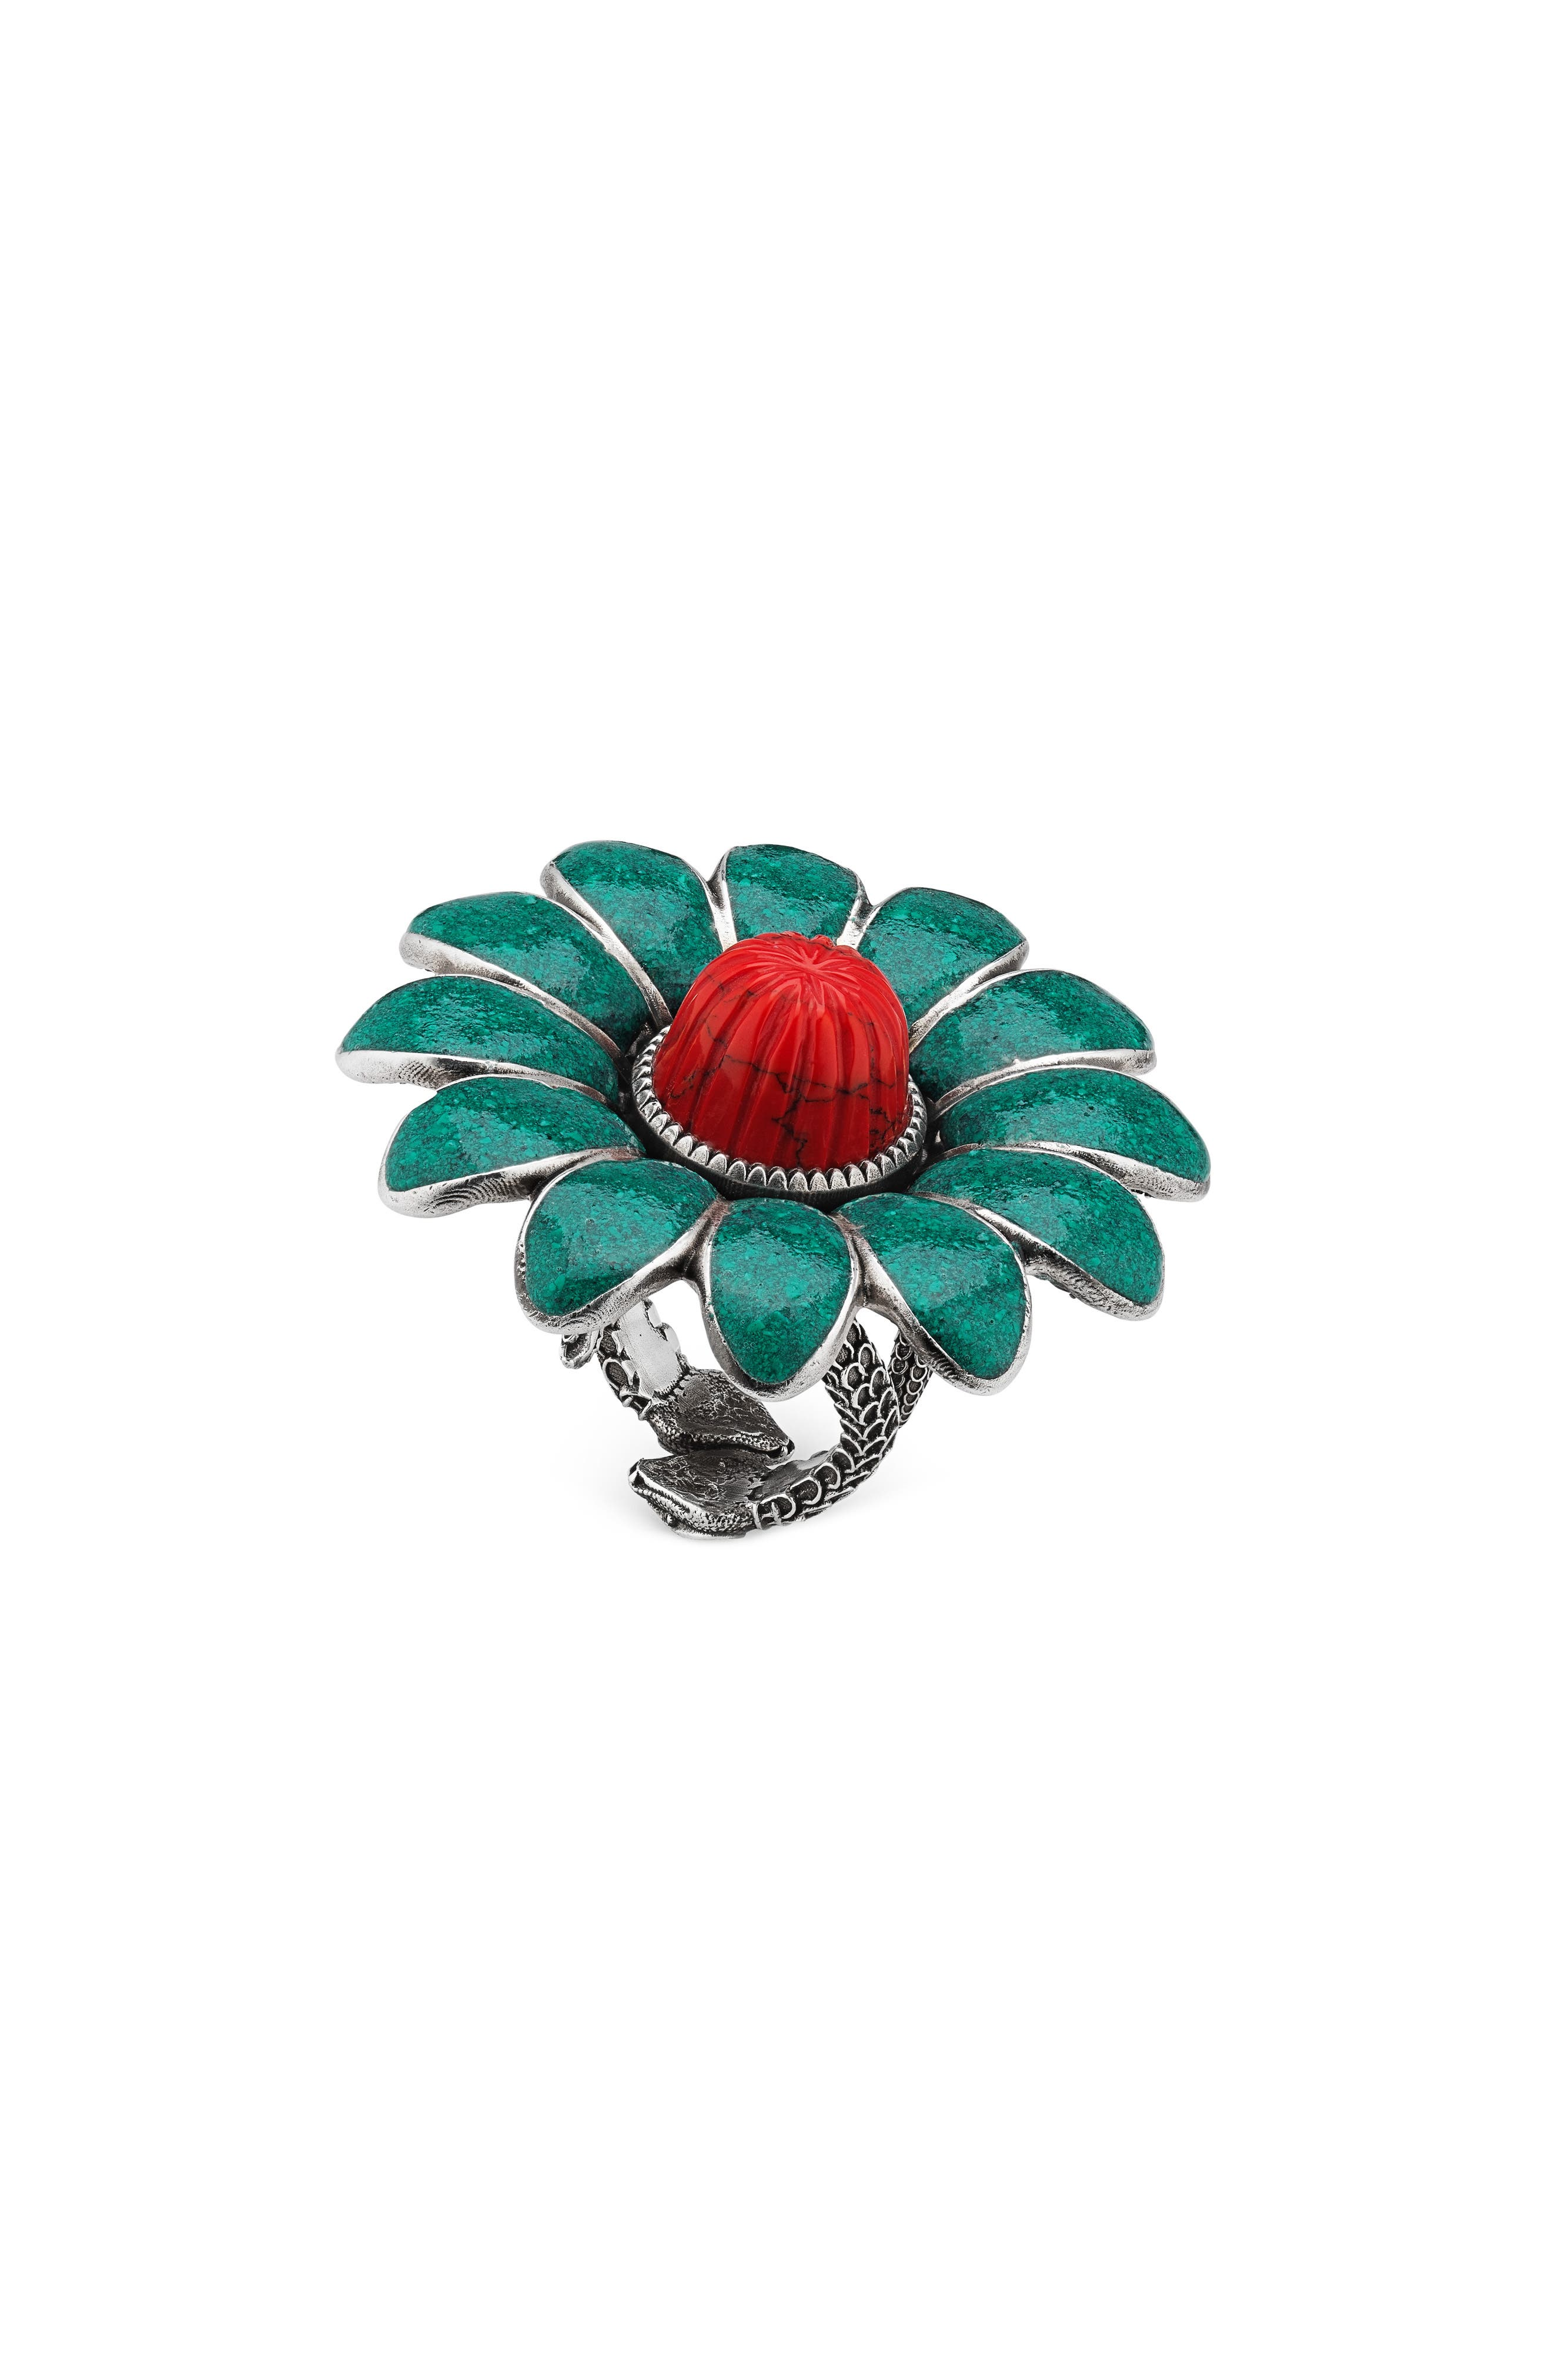 Gg Marmont Flower Ring in Sterling Silver/ Turquoise